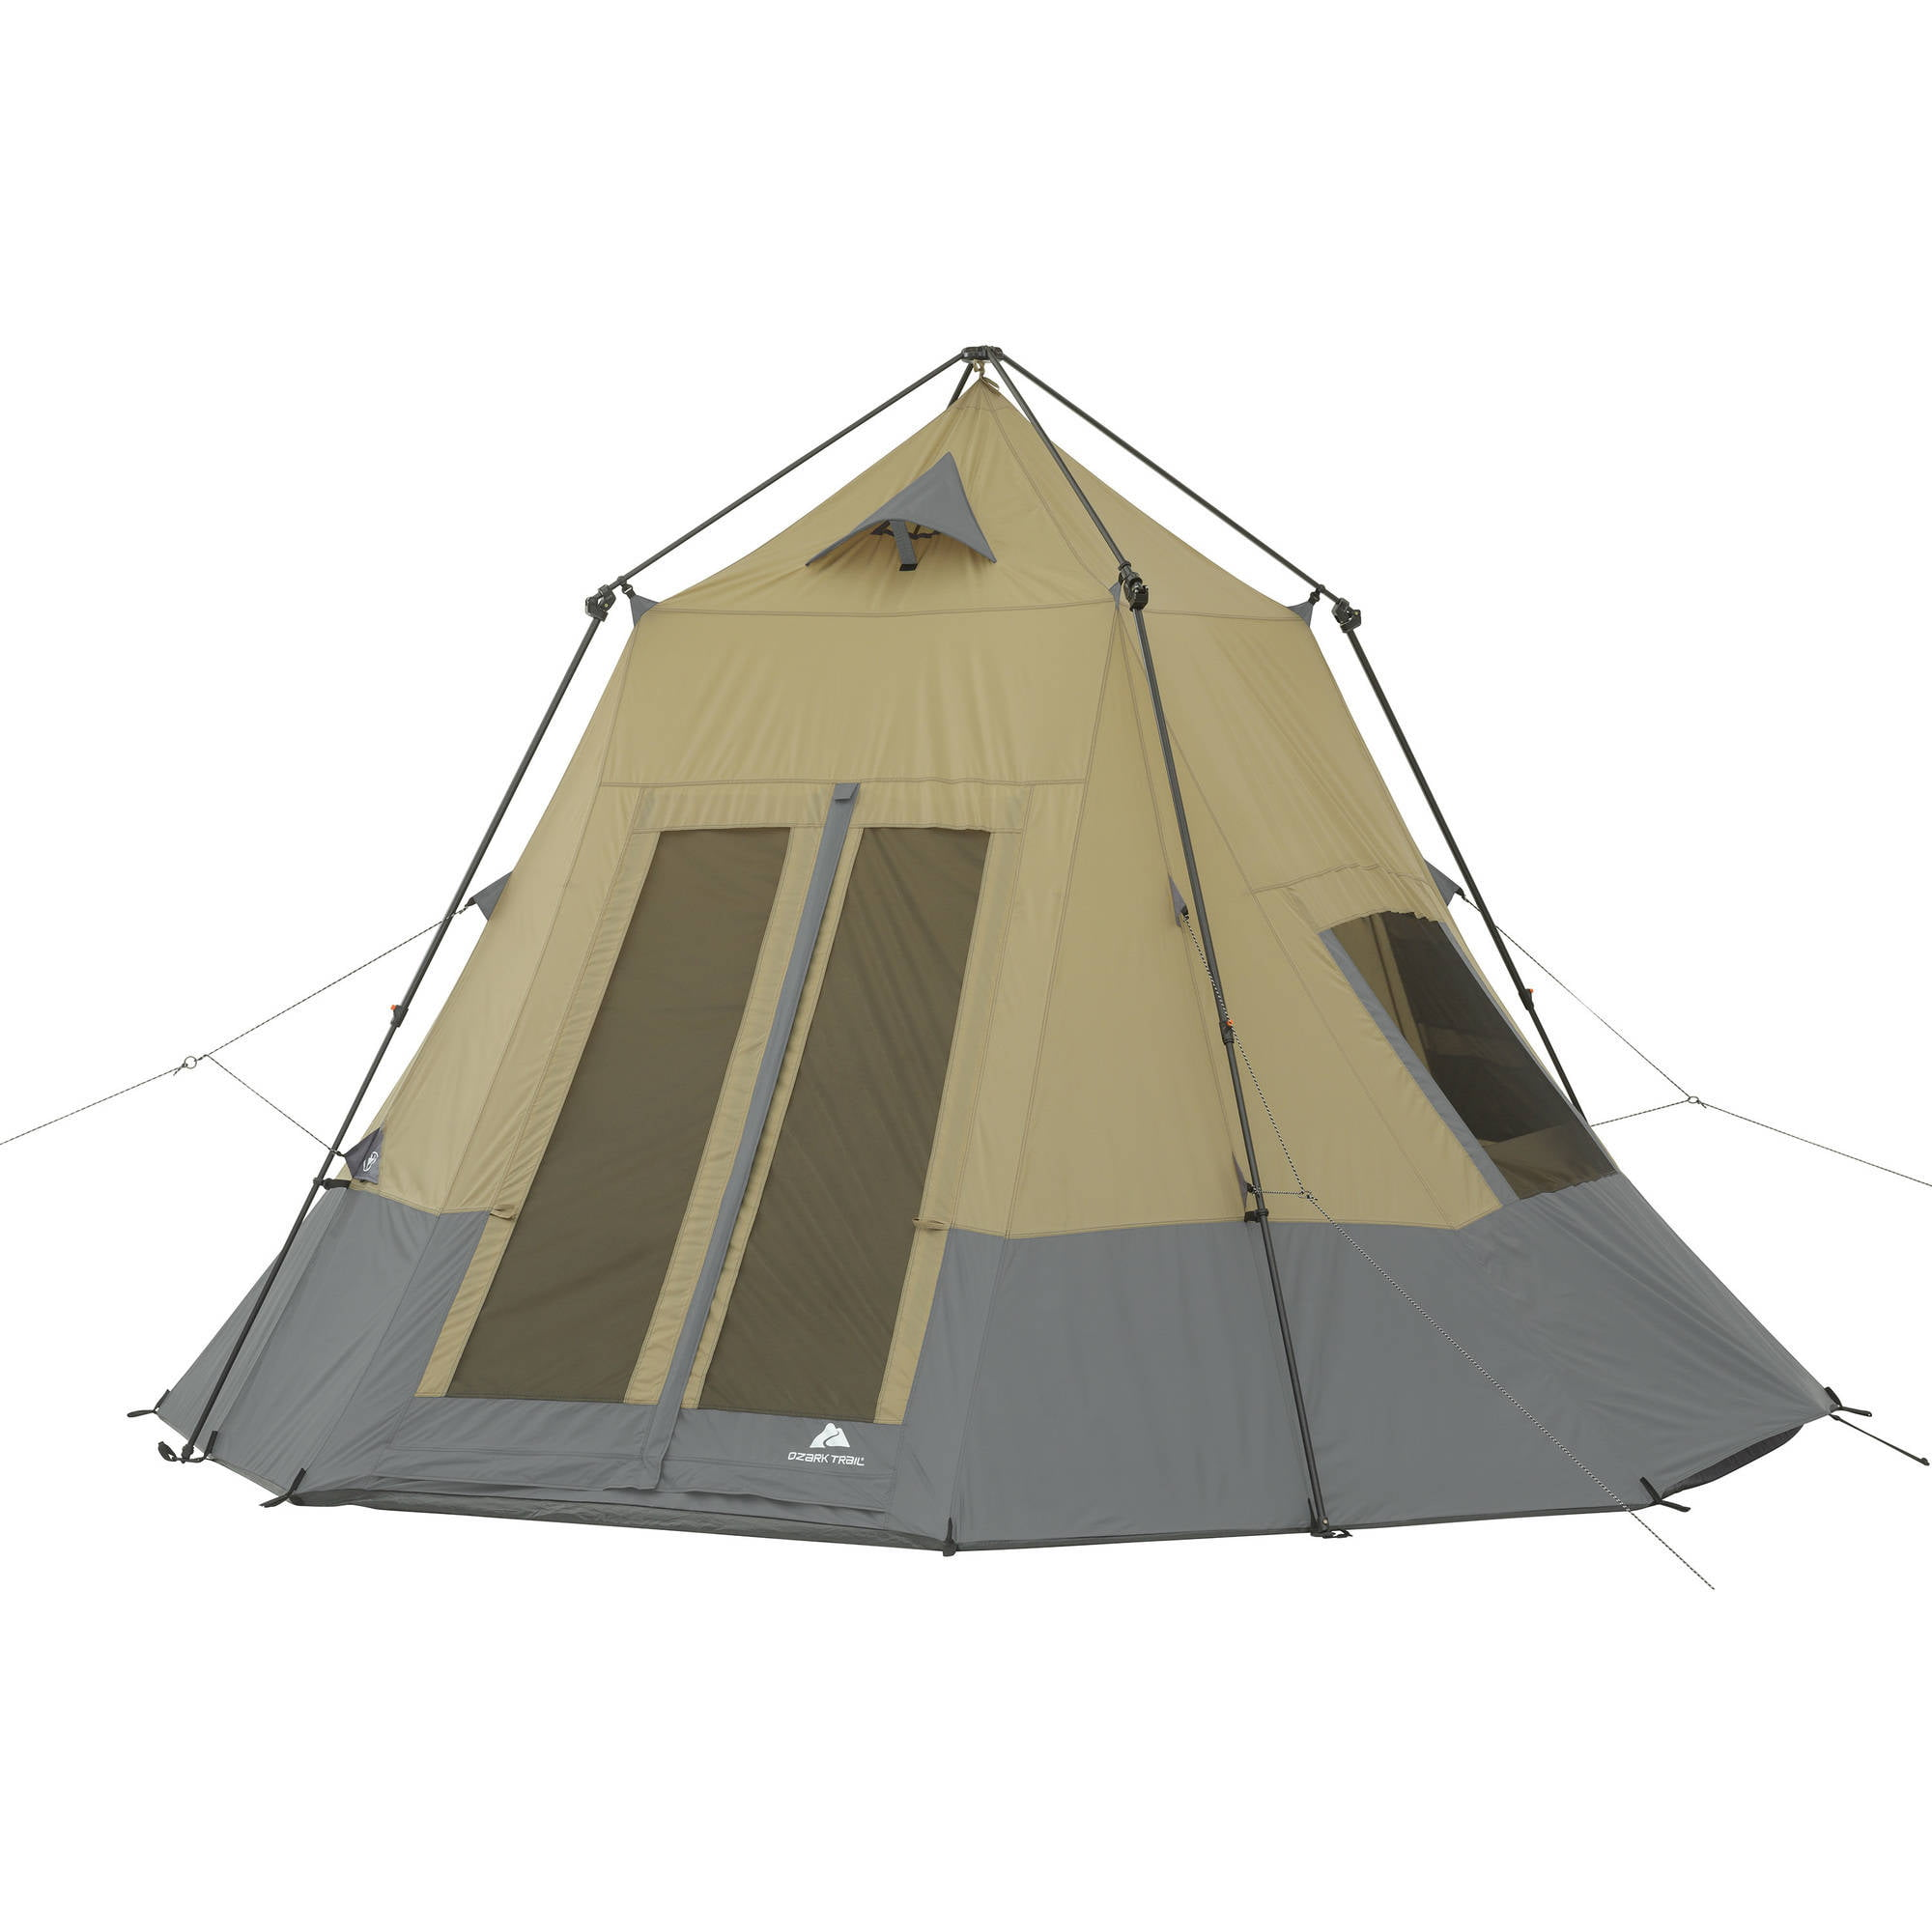 Instant Tepee Tent Sleeps Stakes Included 7 Easy 2 Minute Setup No 12 Ft x 12  sc 1 st  eBay & Instant Tepee Tent Sleeps Stakes Included 7 Easy 2 Minute Setup No ...